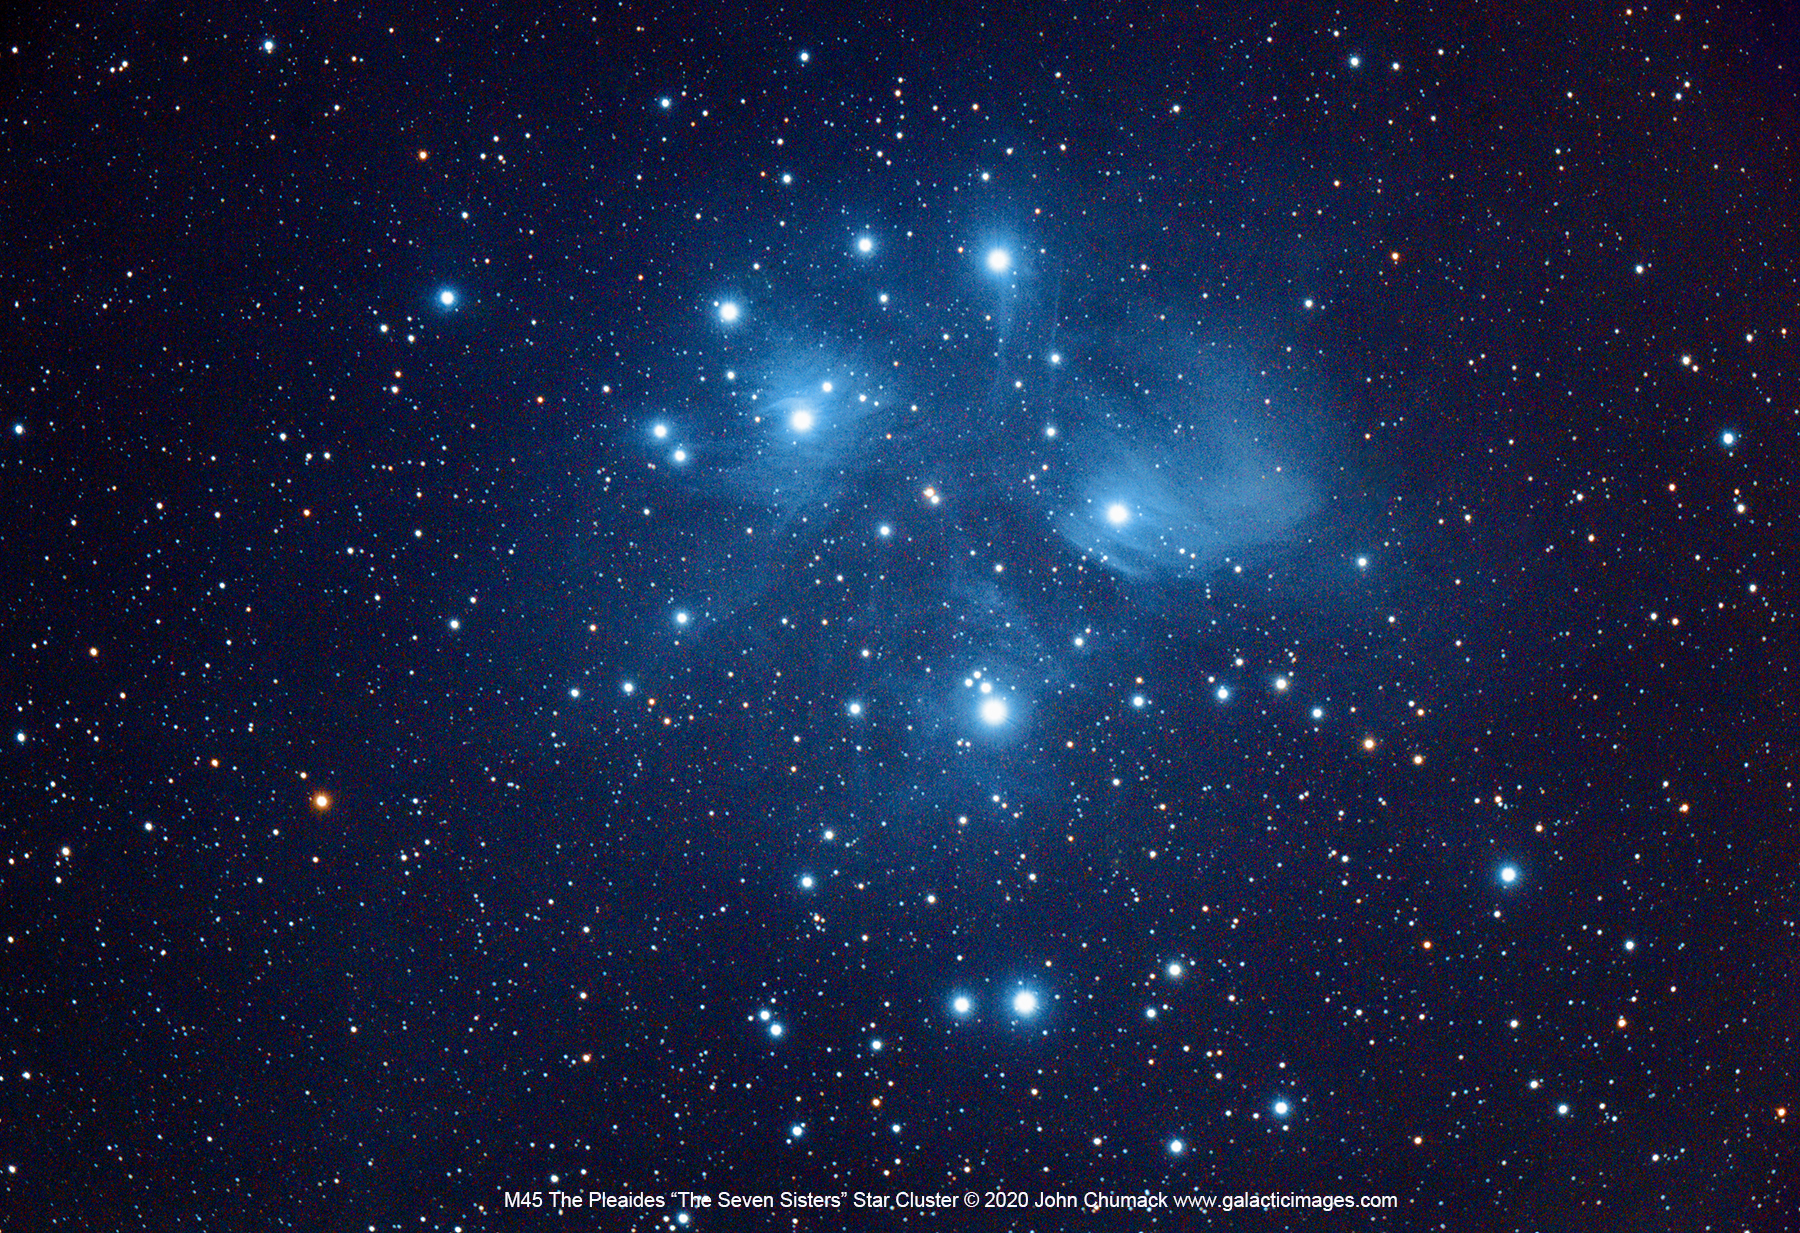 M45 Pleaides The Seven Sisters star Cluster in Taurus